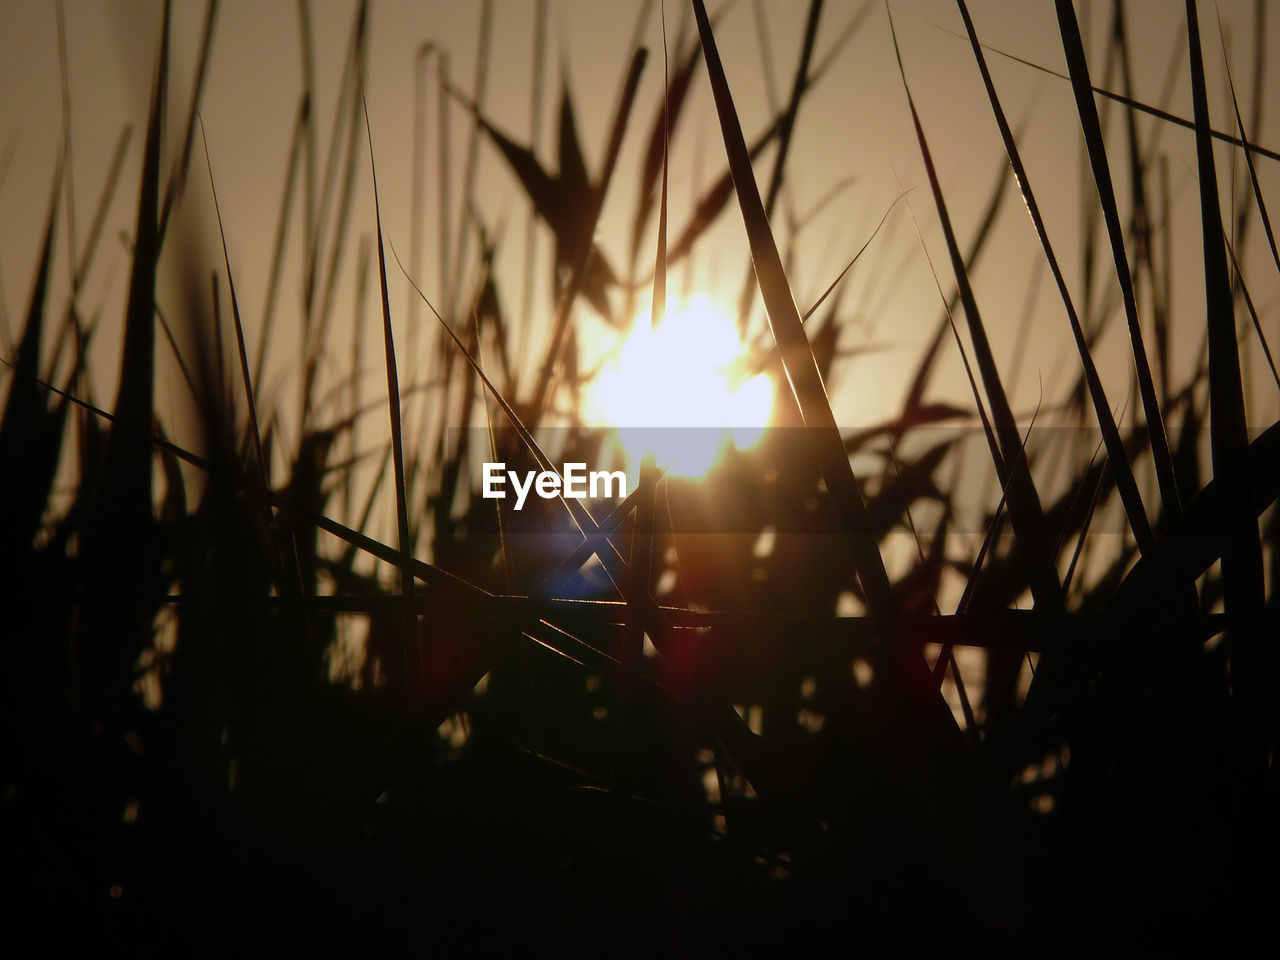 sunset, sun, lens flare, nature, silhouette, growth, beauty in nature, no people, sunlight, outdoors, field, plant, tranquility, scenics, tranquil scene, close-up, grass, sky, tree, day